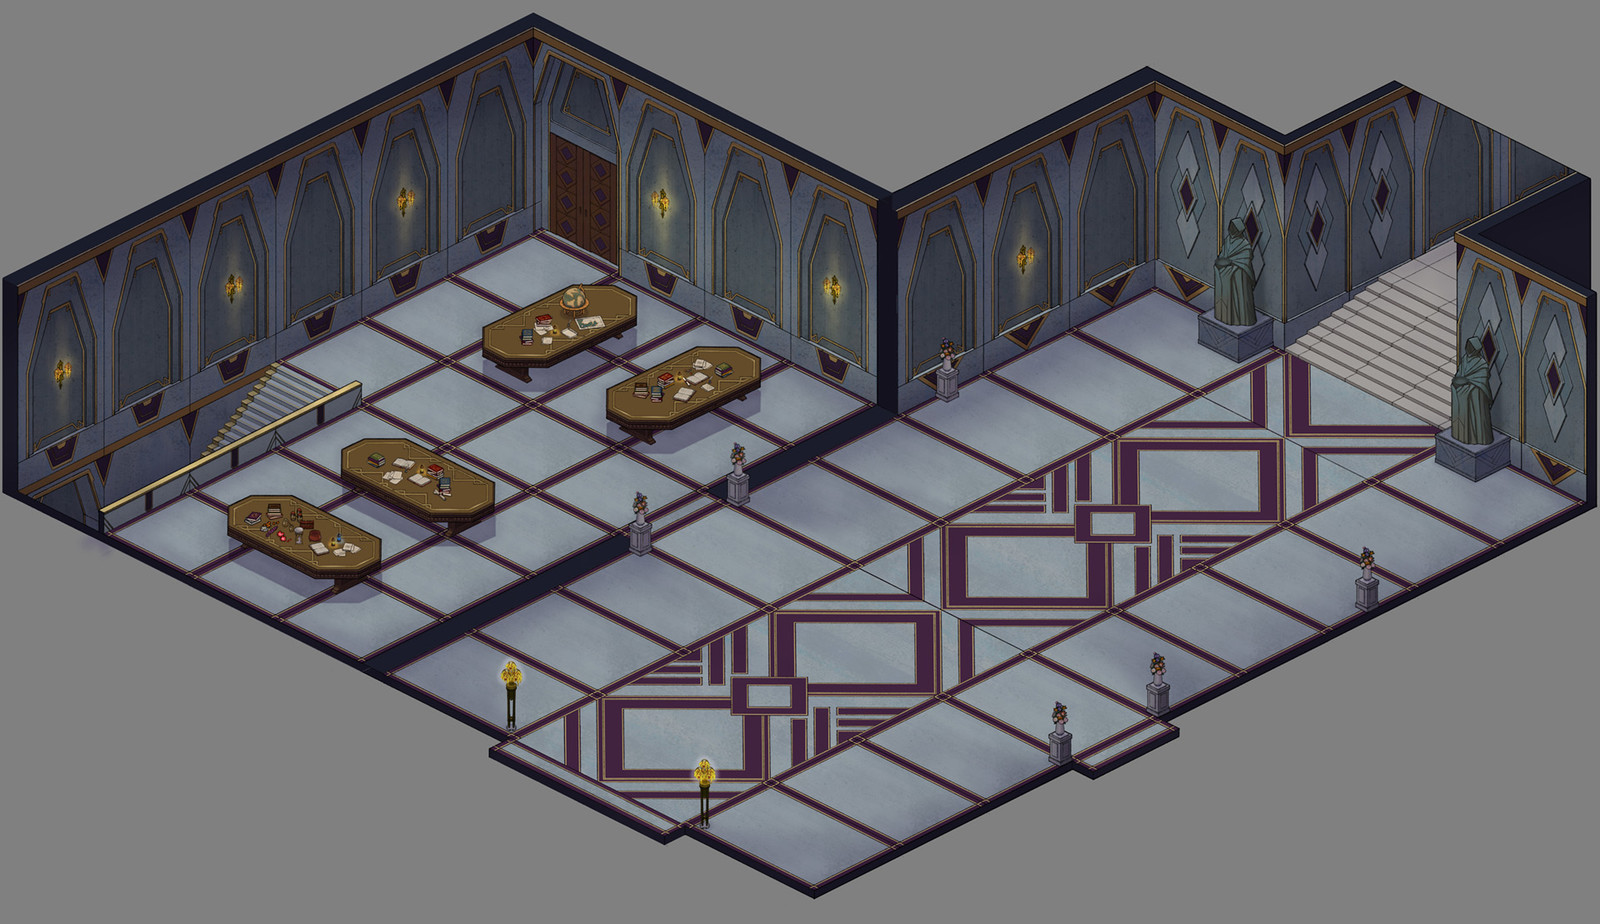 Final Asset - Full (Without Wall)